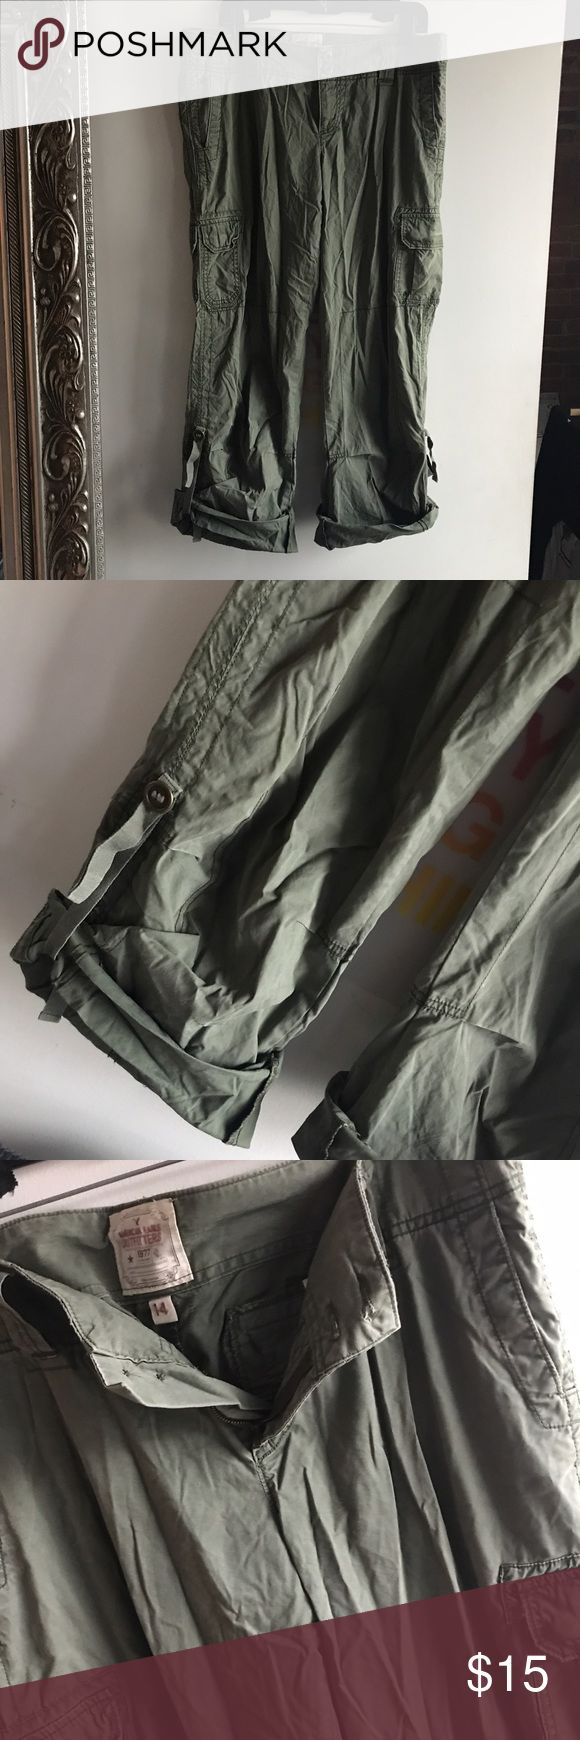 american eagle cargo pants green army pockets 14 american eagle outfitters. cargo capri pants with lots of pockets. can be worn as pants or capris. straight leg wide leg trousers. color army green. size 14. American Eagle Outfitters Pants Capris